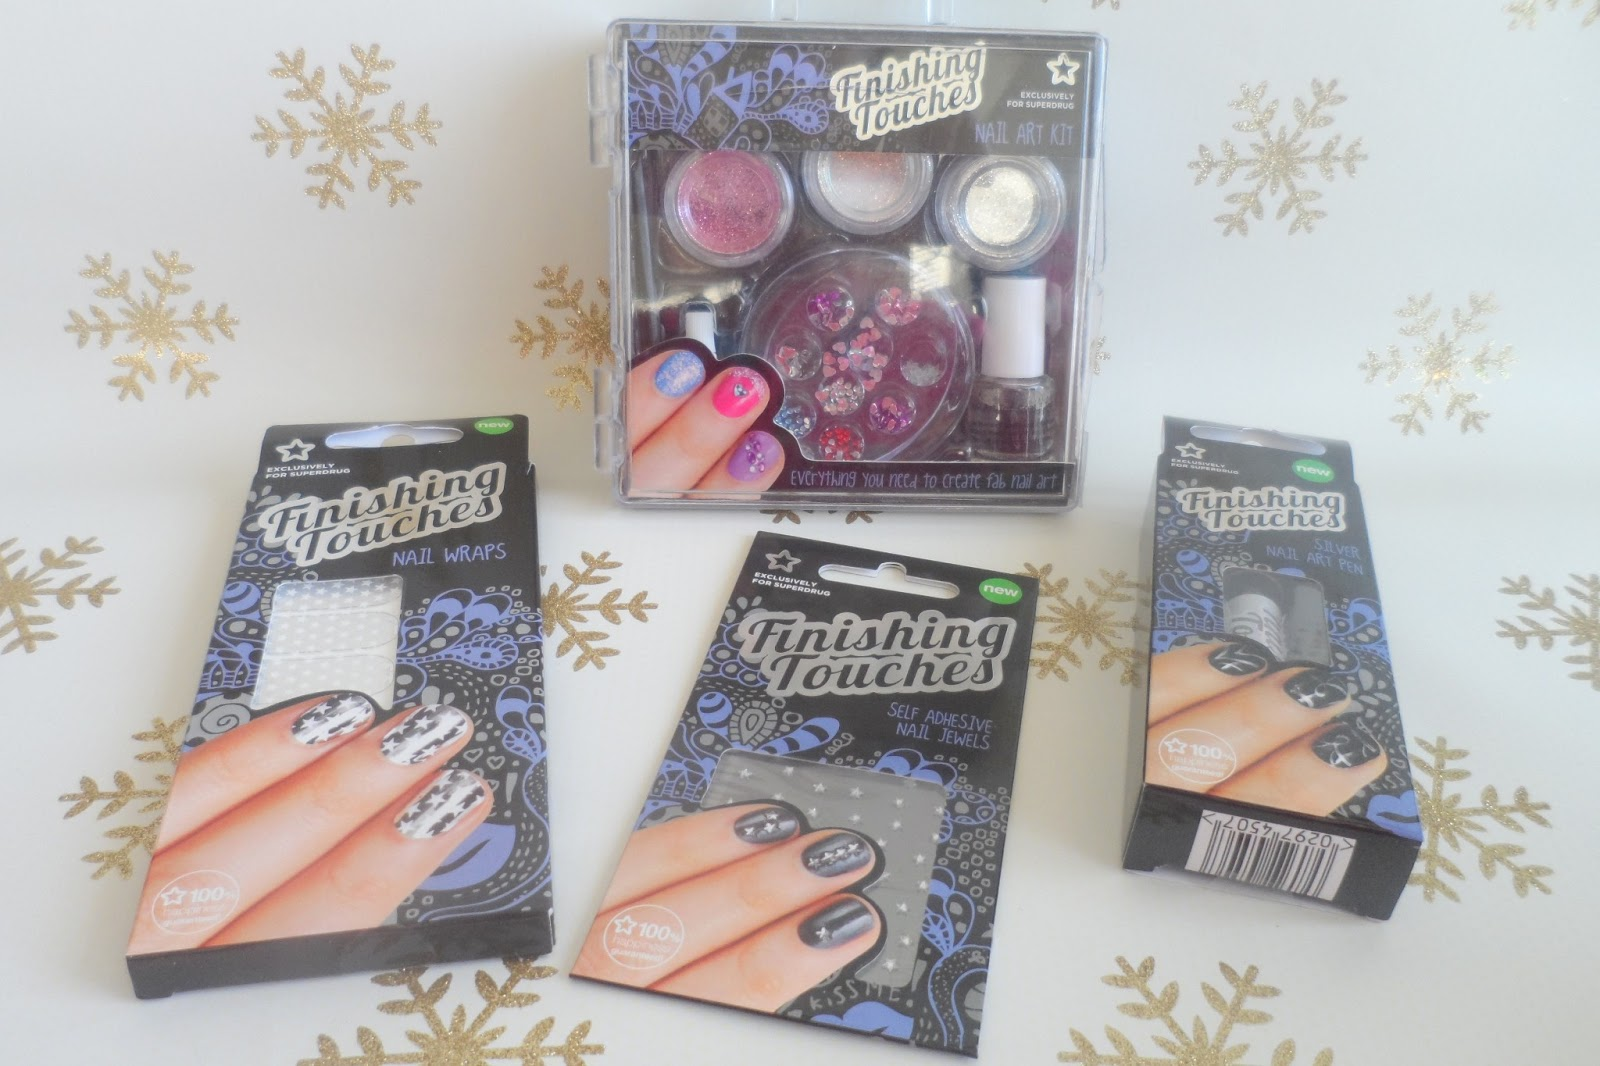 Finishing Touches nail art supplies from Superdrug | flutter and sparkle